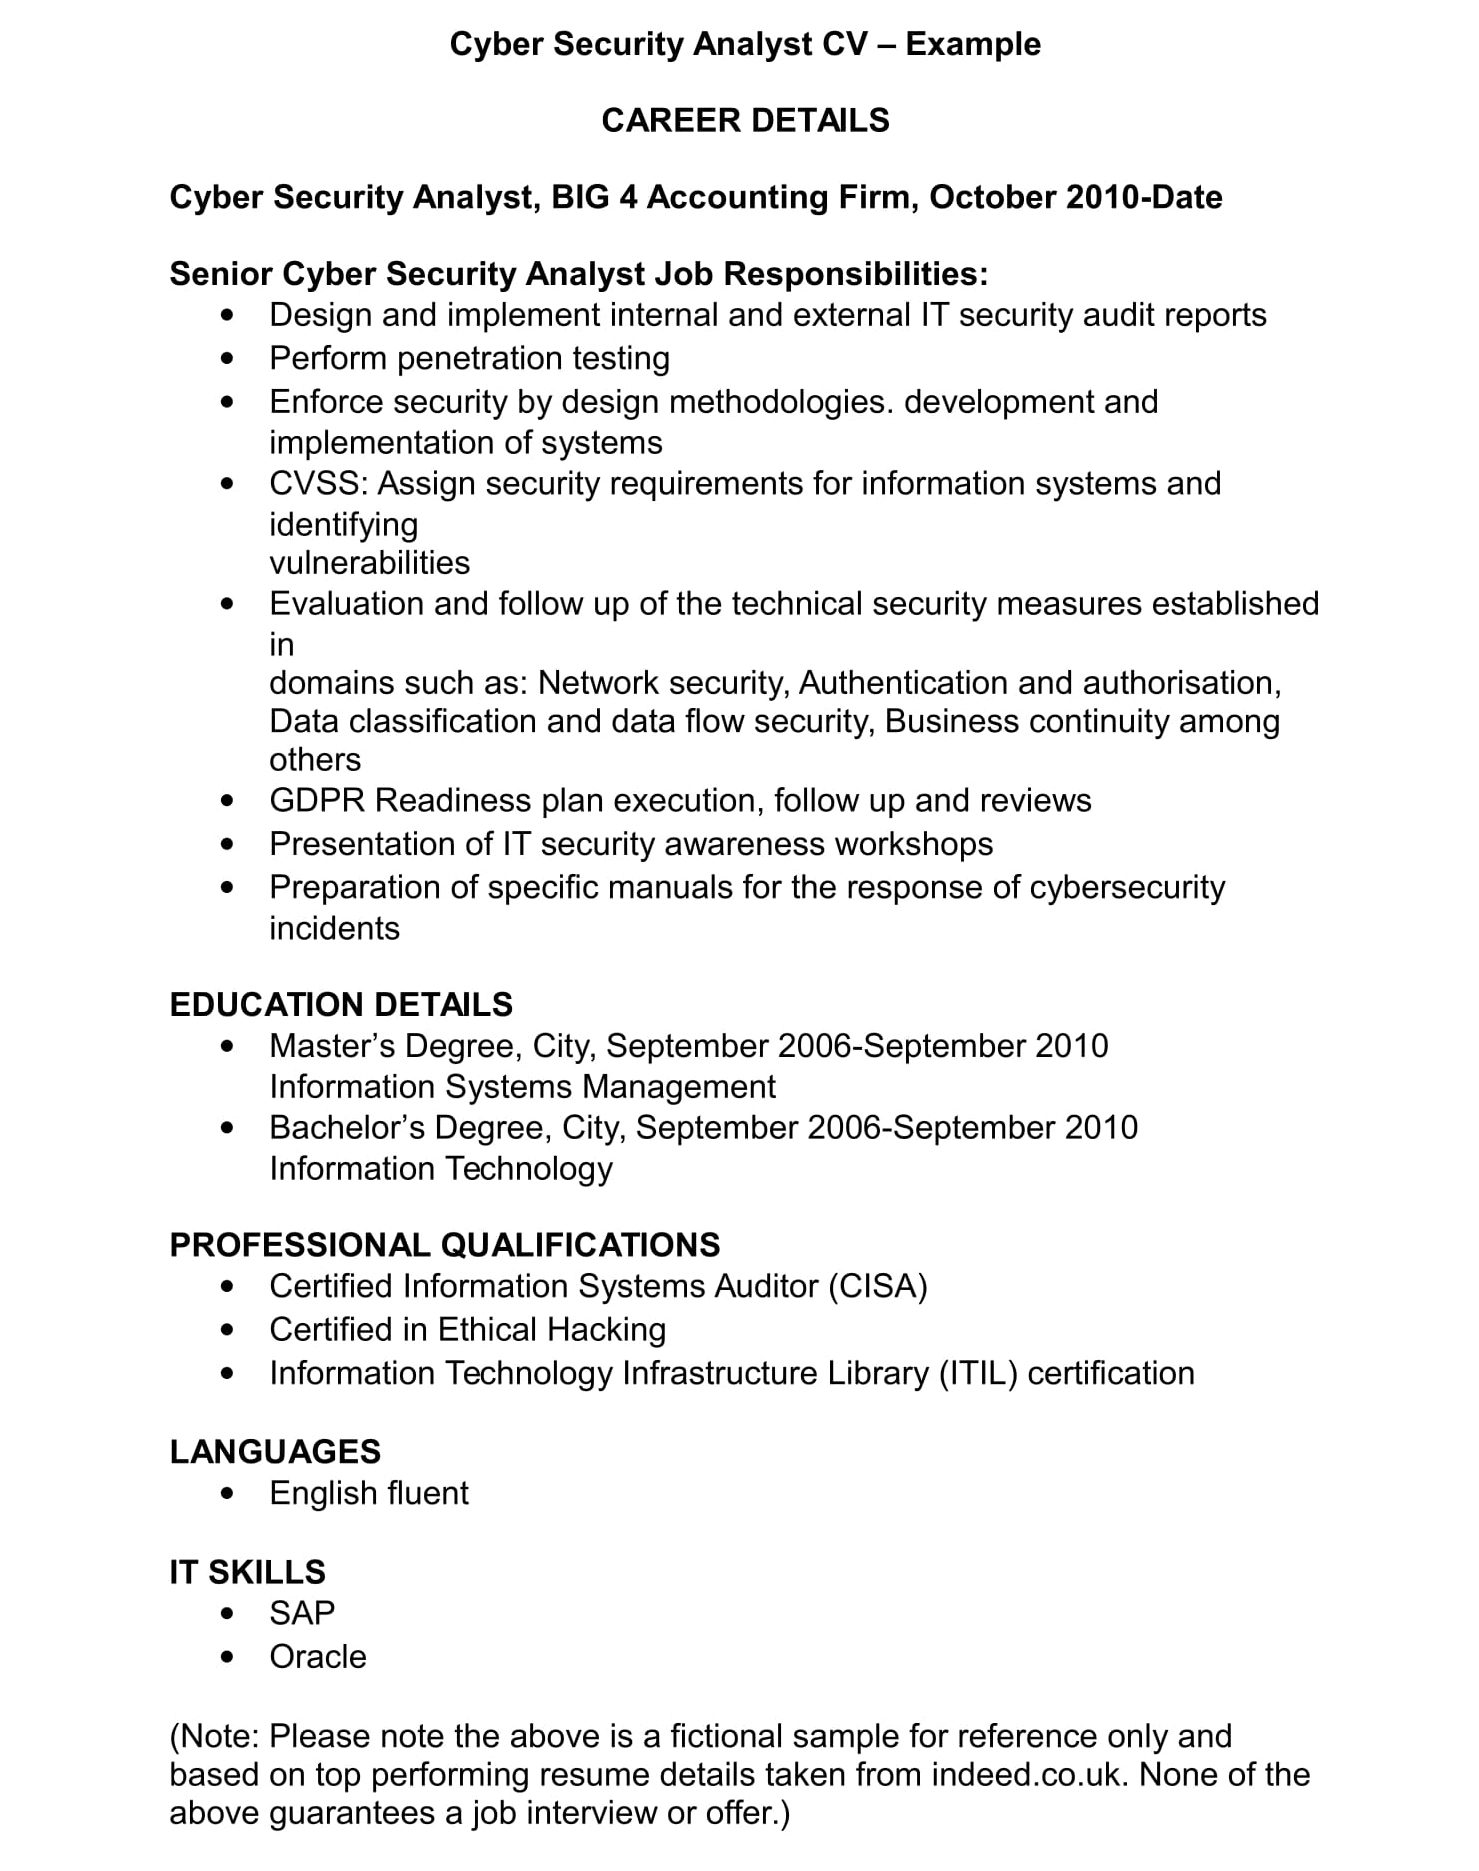 cyber security cv template and examples renaix information analyst sample resume example Resume Information Security Analyst Sample Resume